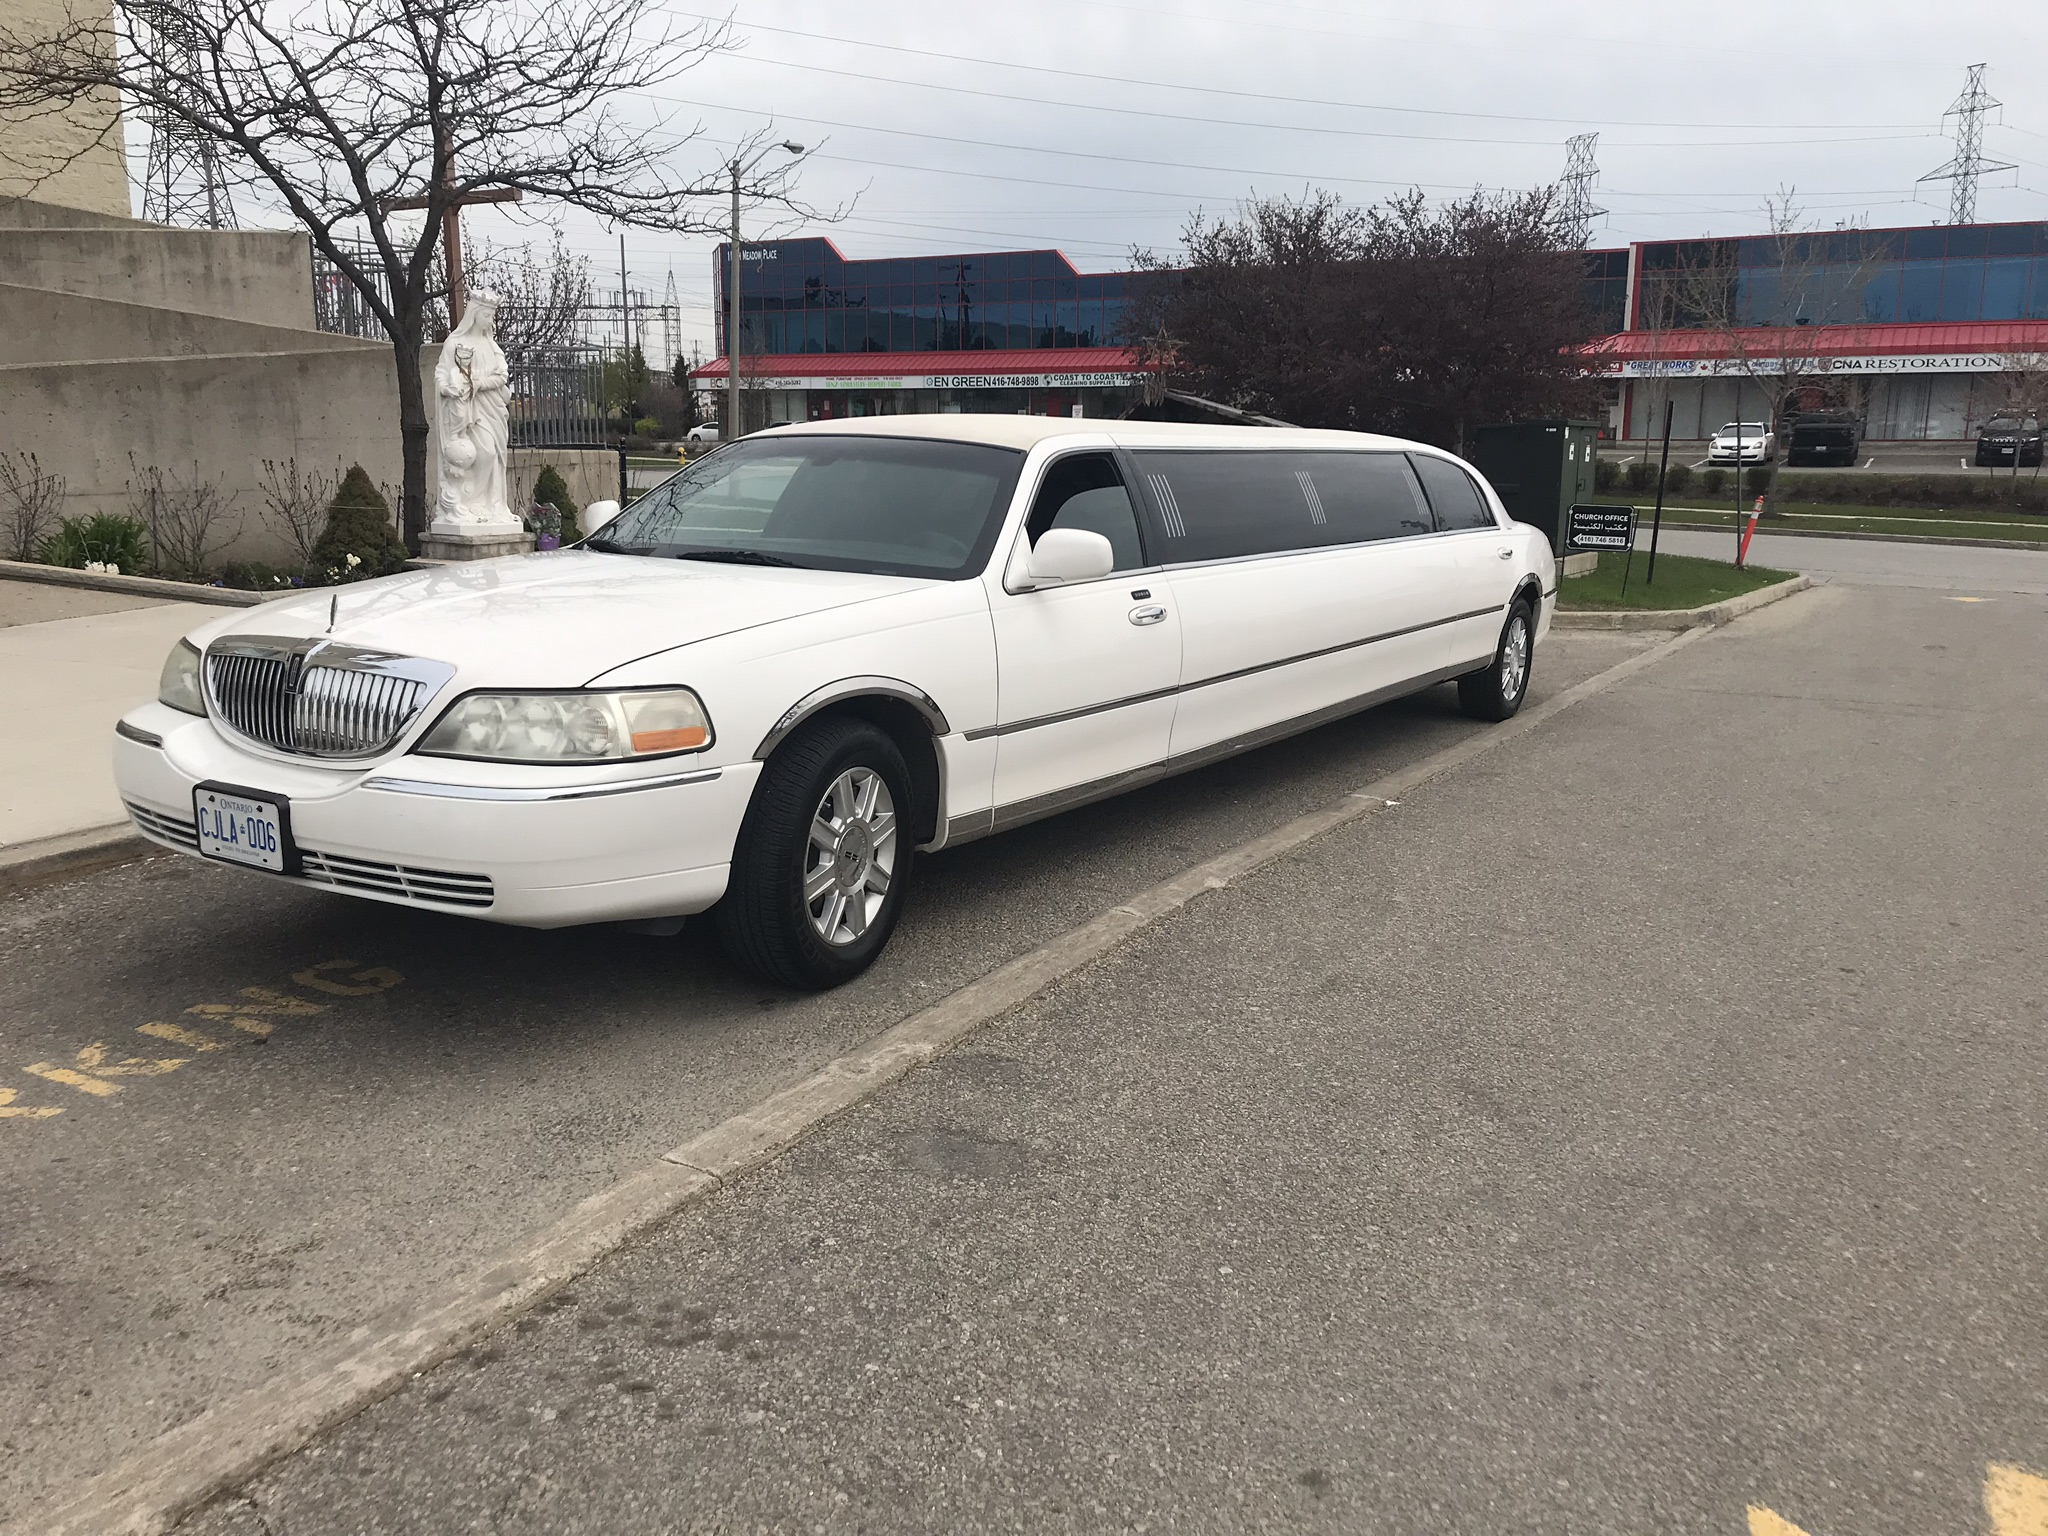 CEDAR VALLEY LIMOUSINE SERVICES INC